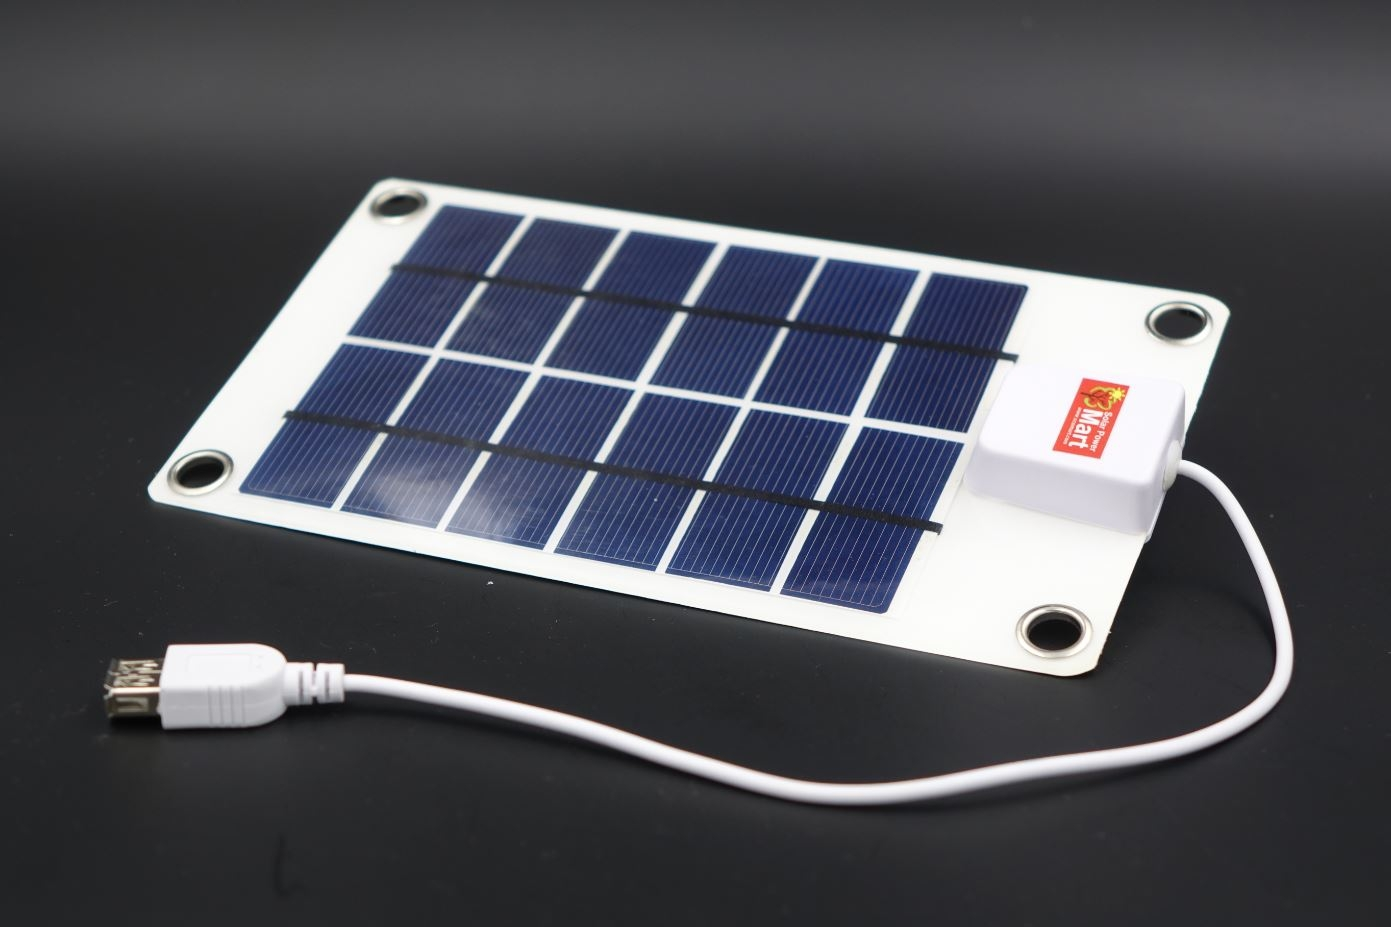 Photovoltaic in addition Cc3425 likewise Solar Powered Led Street Light With Auto Intensity Control besides 74ls11 Triple 3 Input And Gate in addition 9. on solar panel circuit